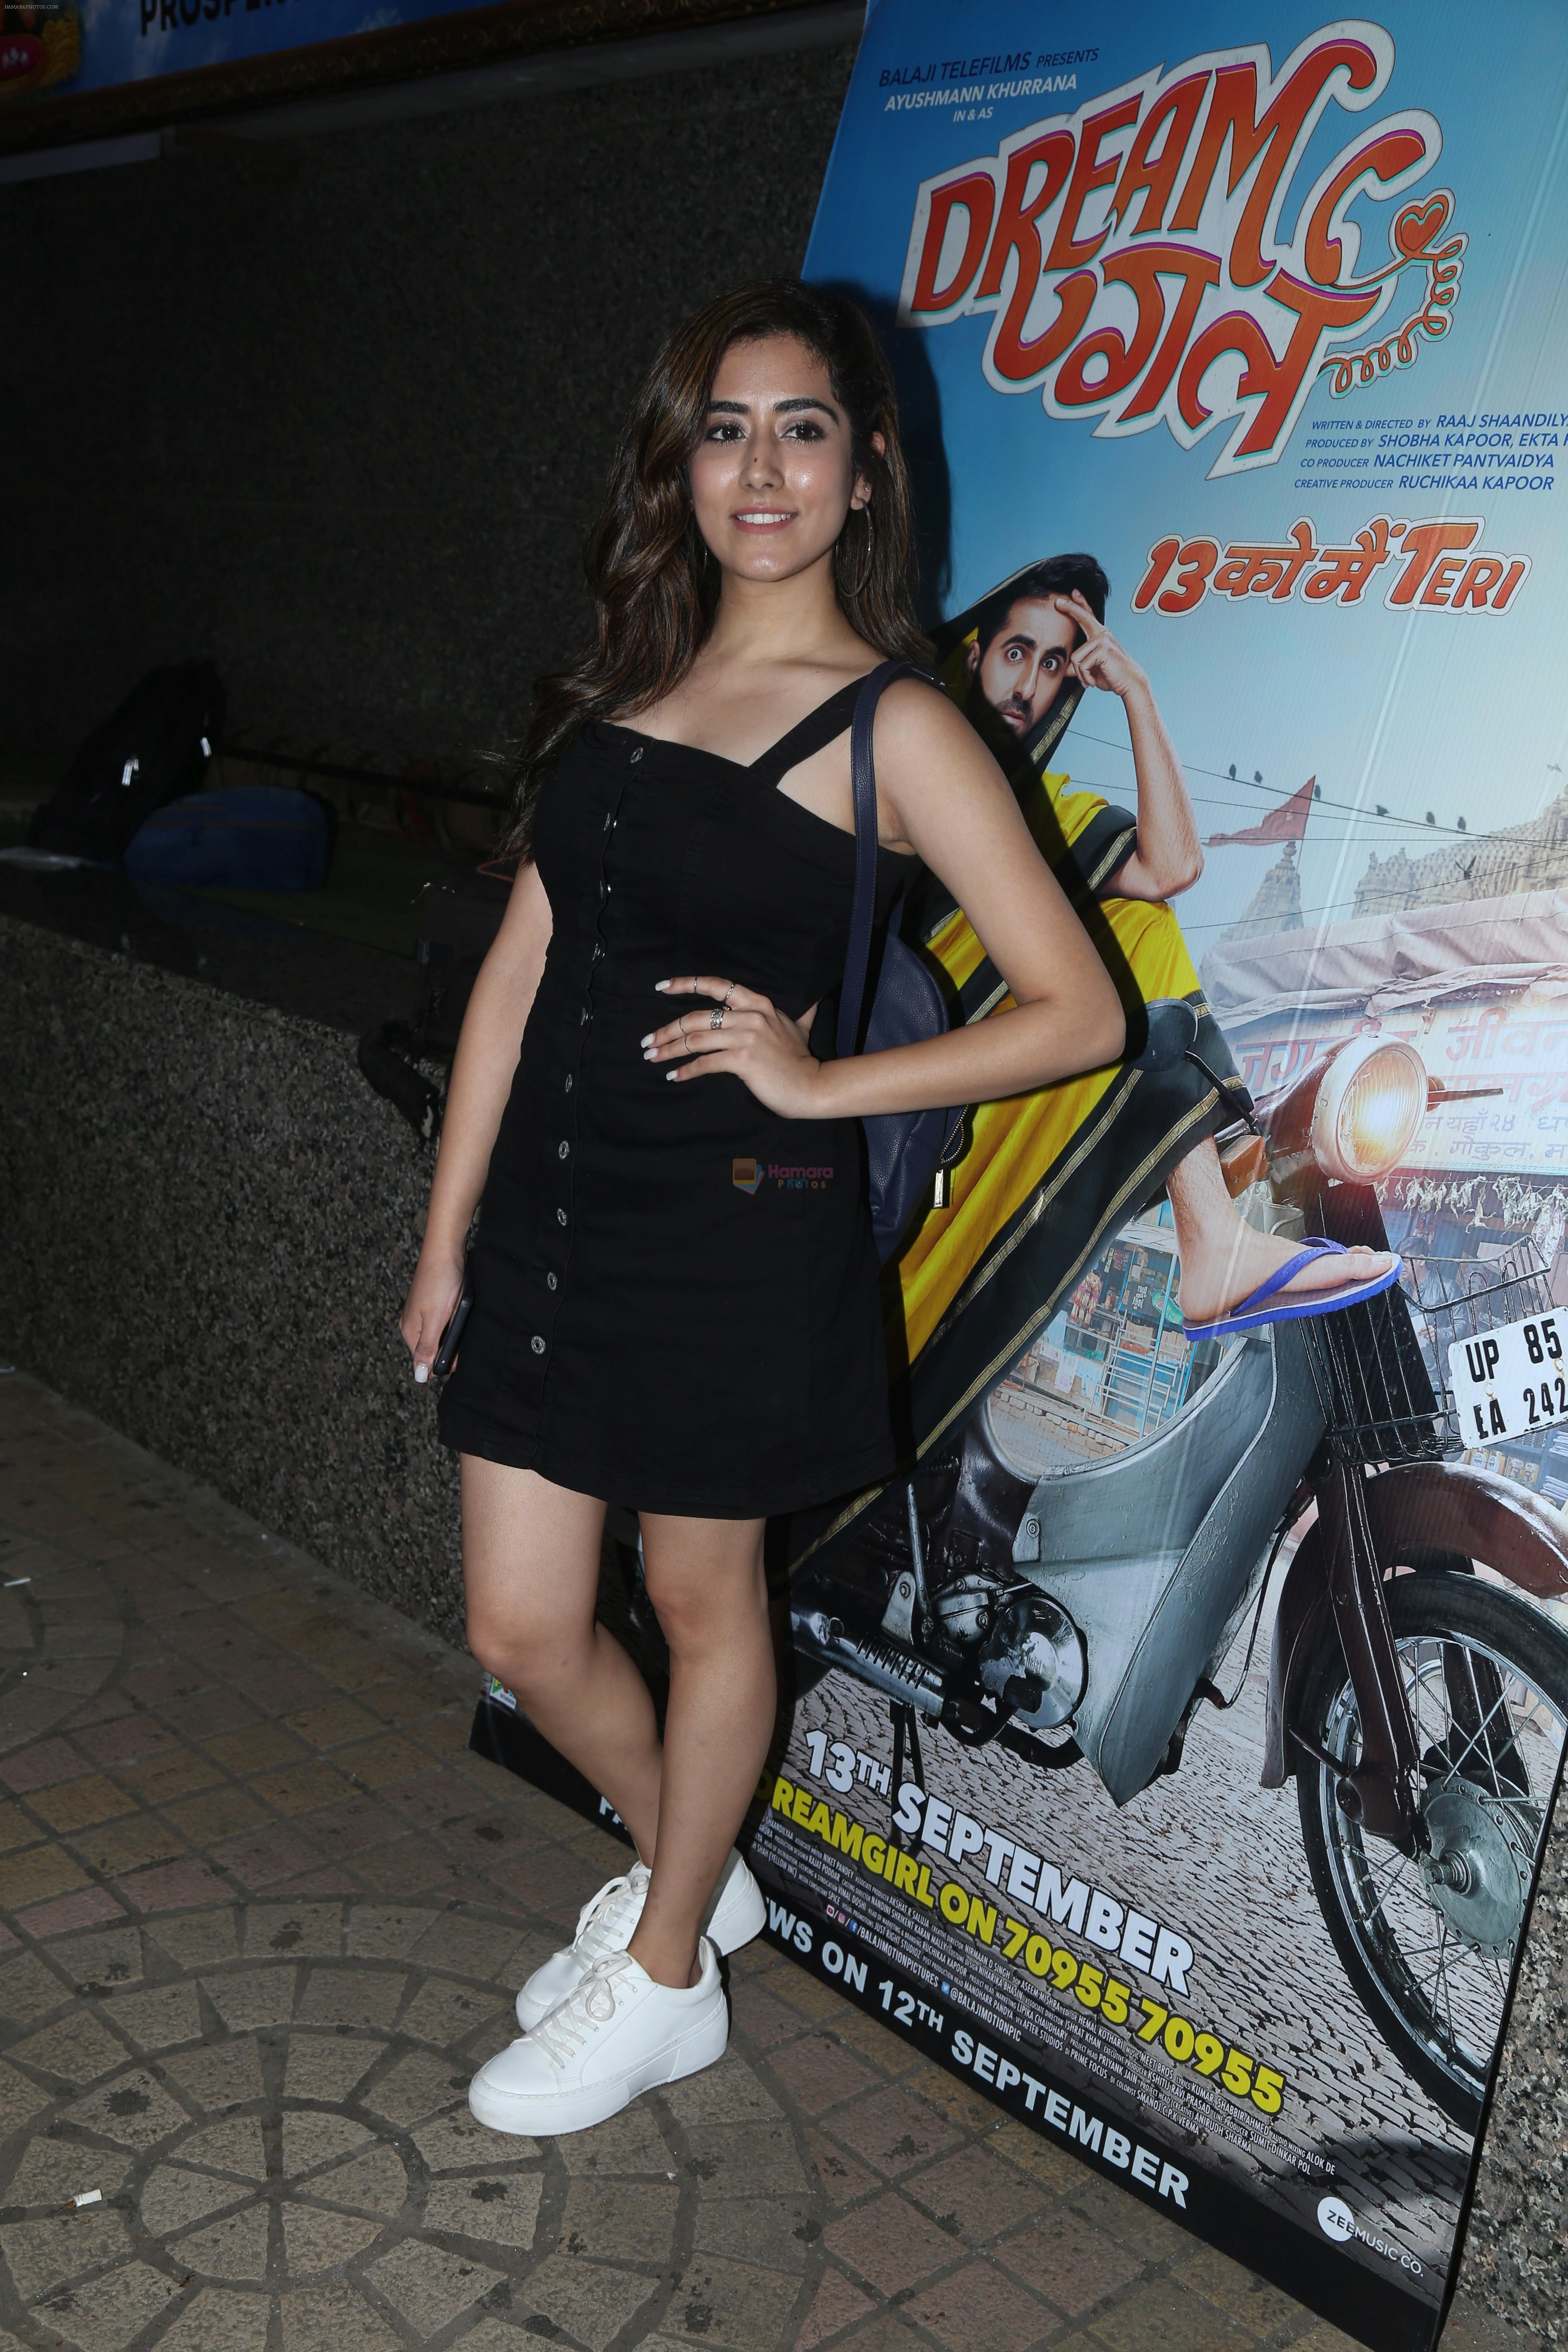 at the Screening of film Dream Girl at pvr ecx in andheri on 12th Sept 2019